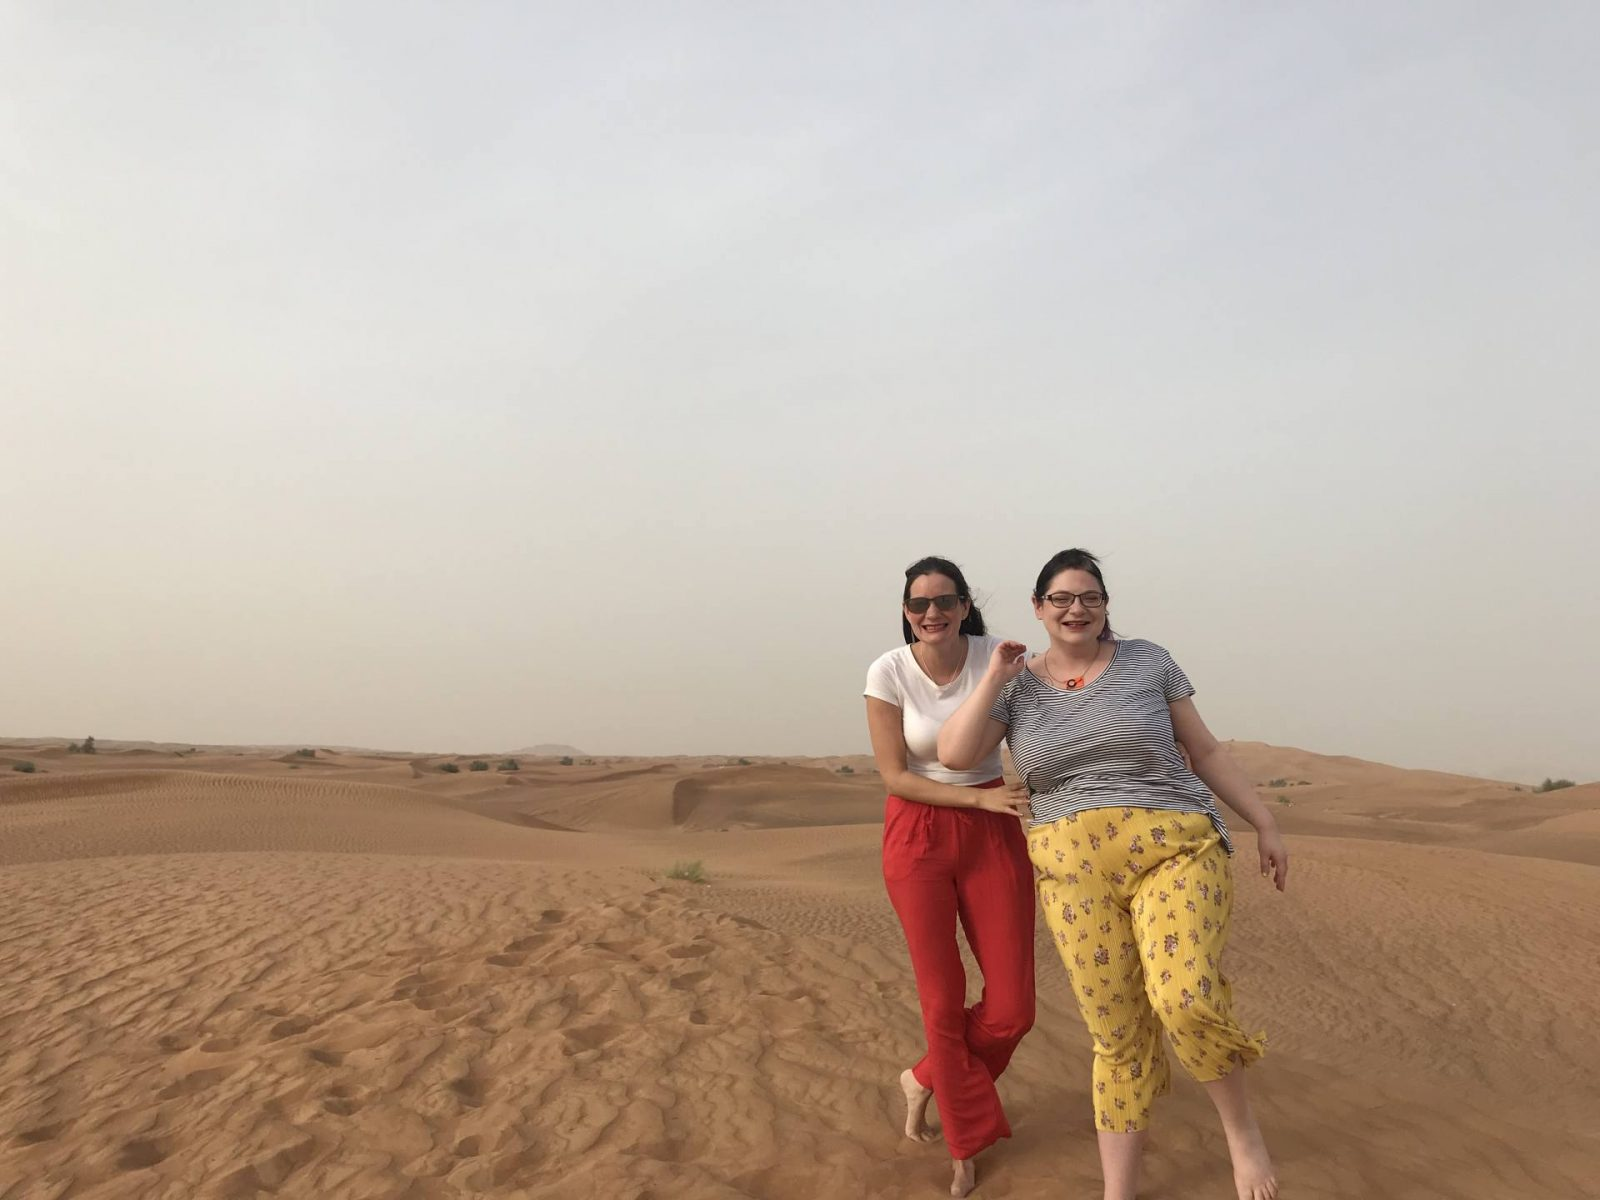 Eesmee and Cha do the Dubai Desert Safari